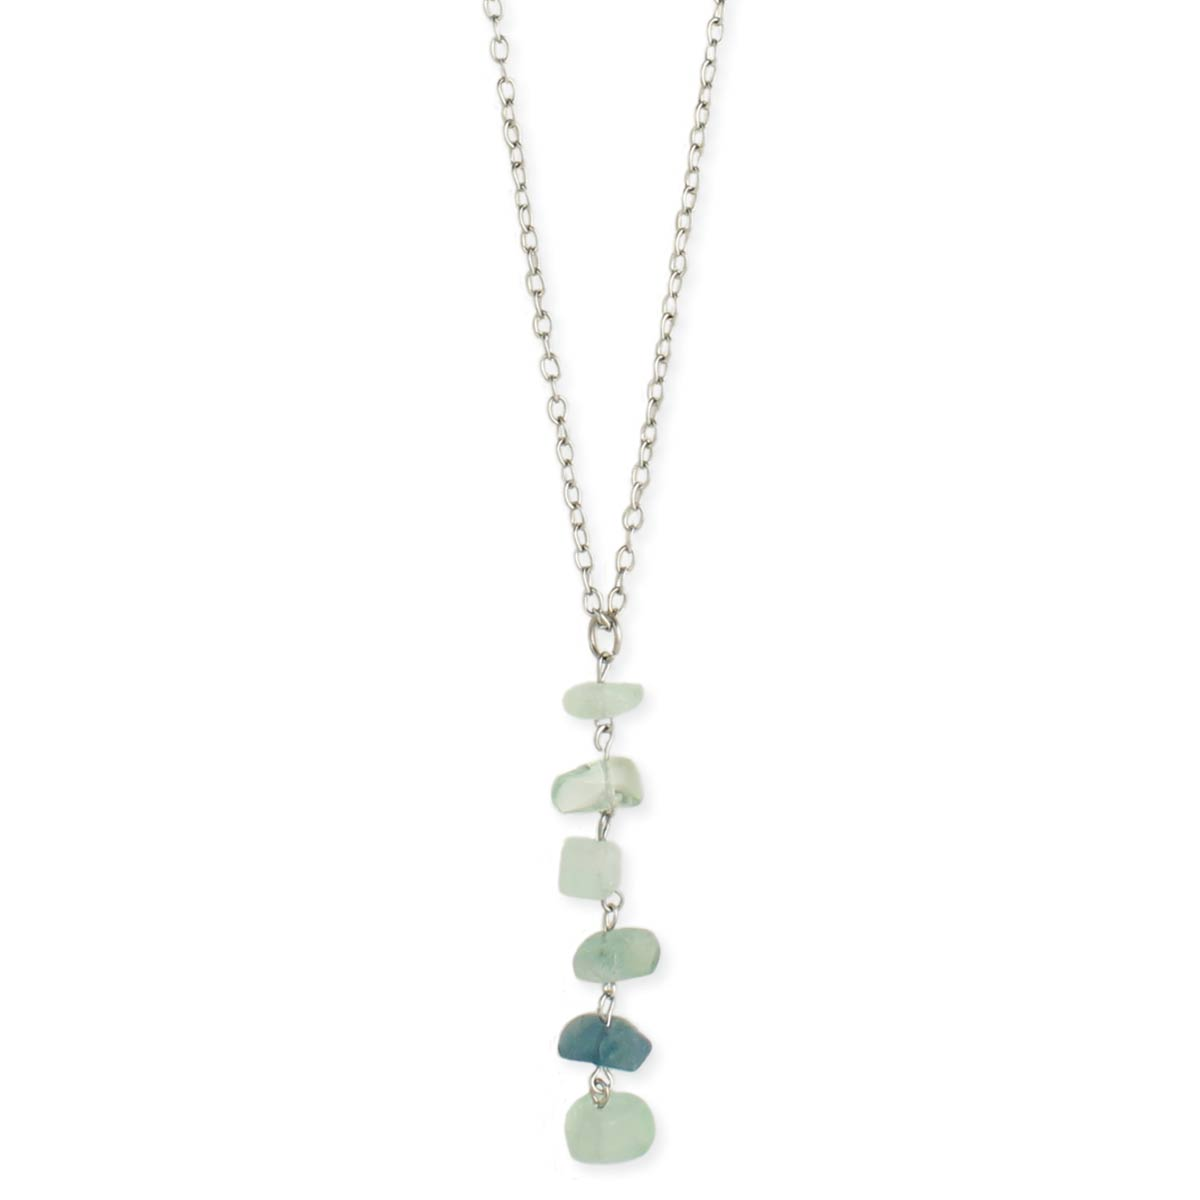 Green Aventurine Linear Pendant Necklace